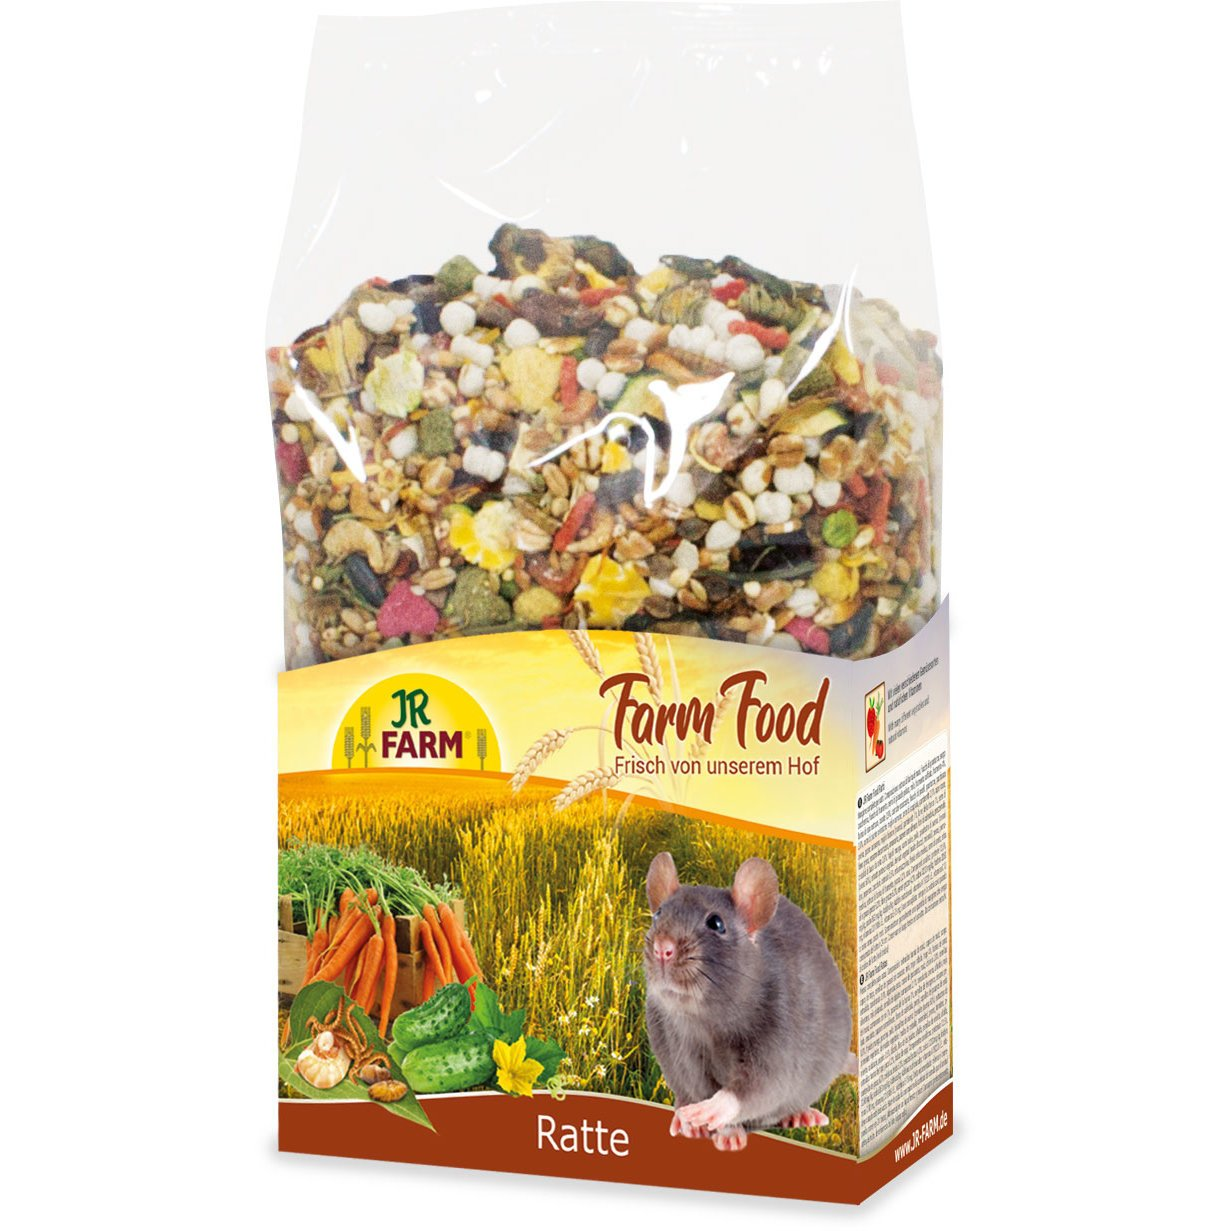 JR Farm Food Rattenfutter Adult, 500g